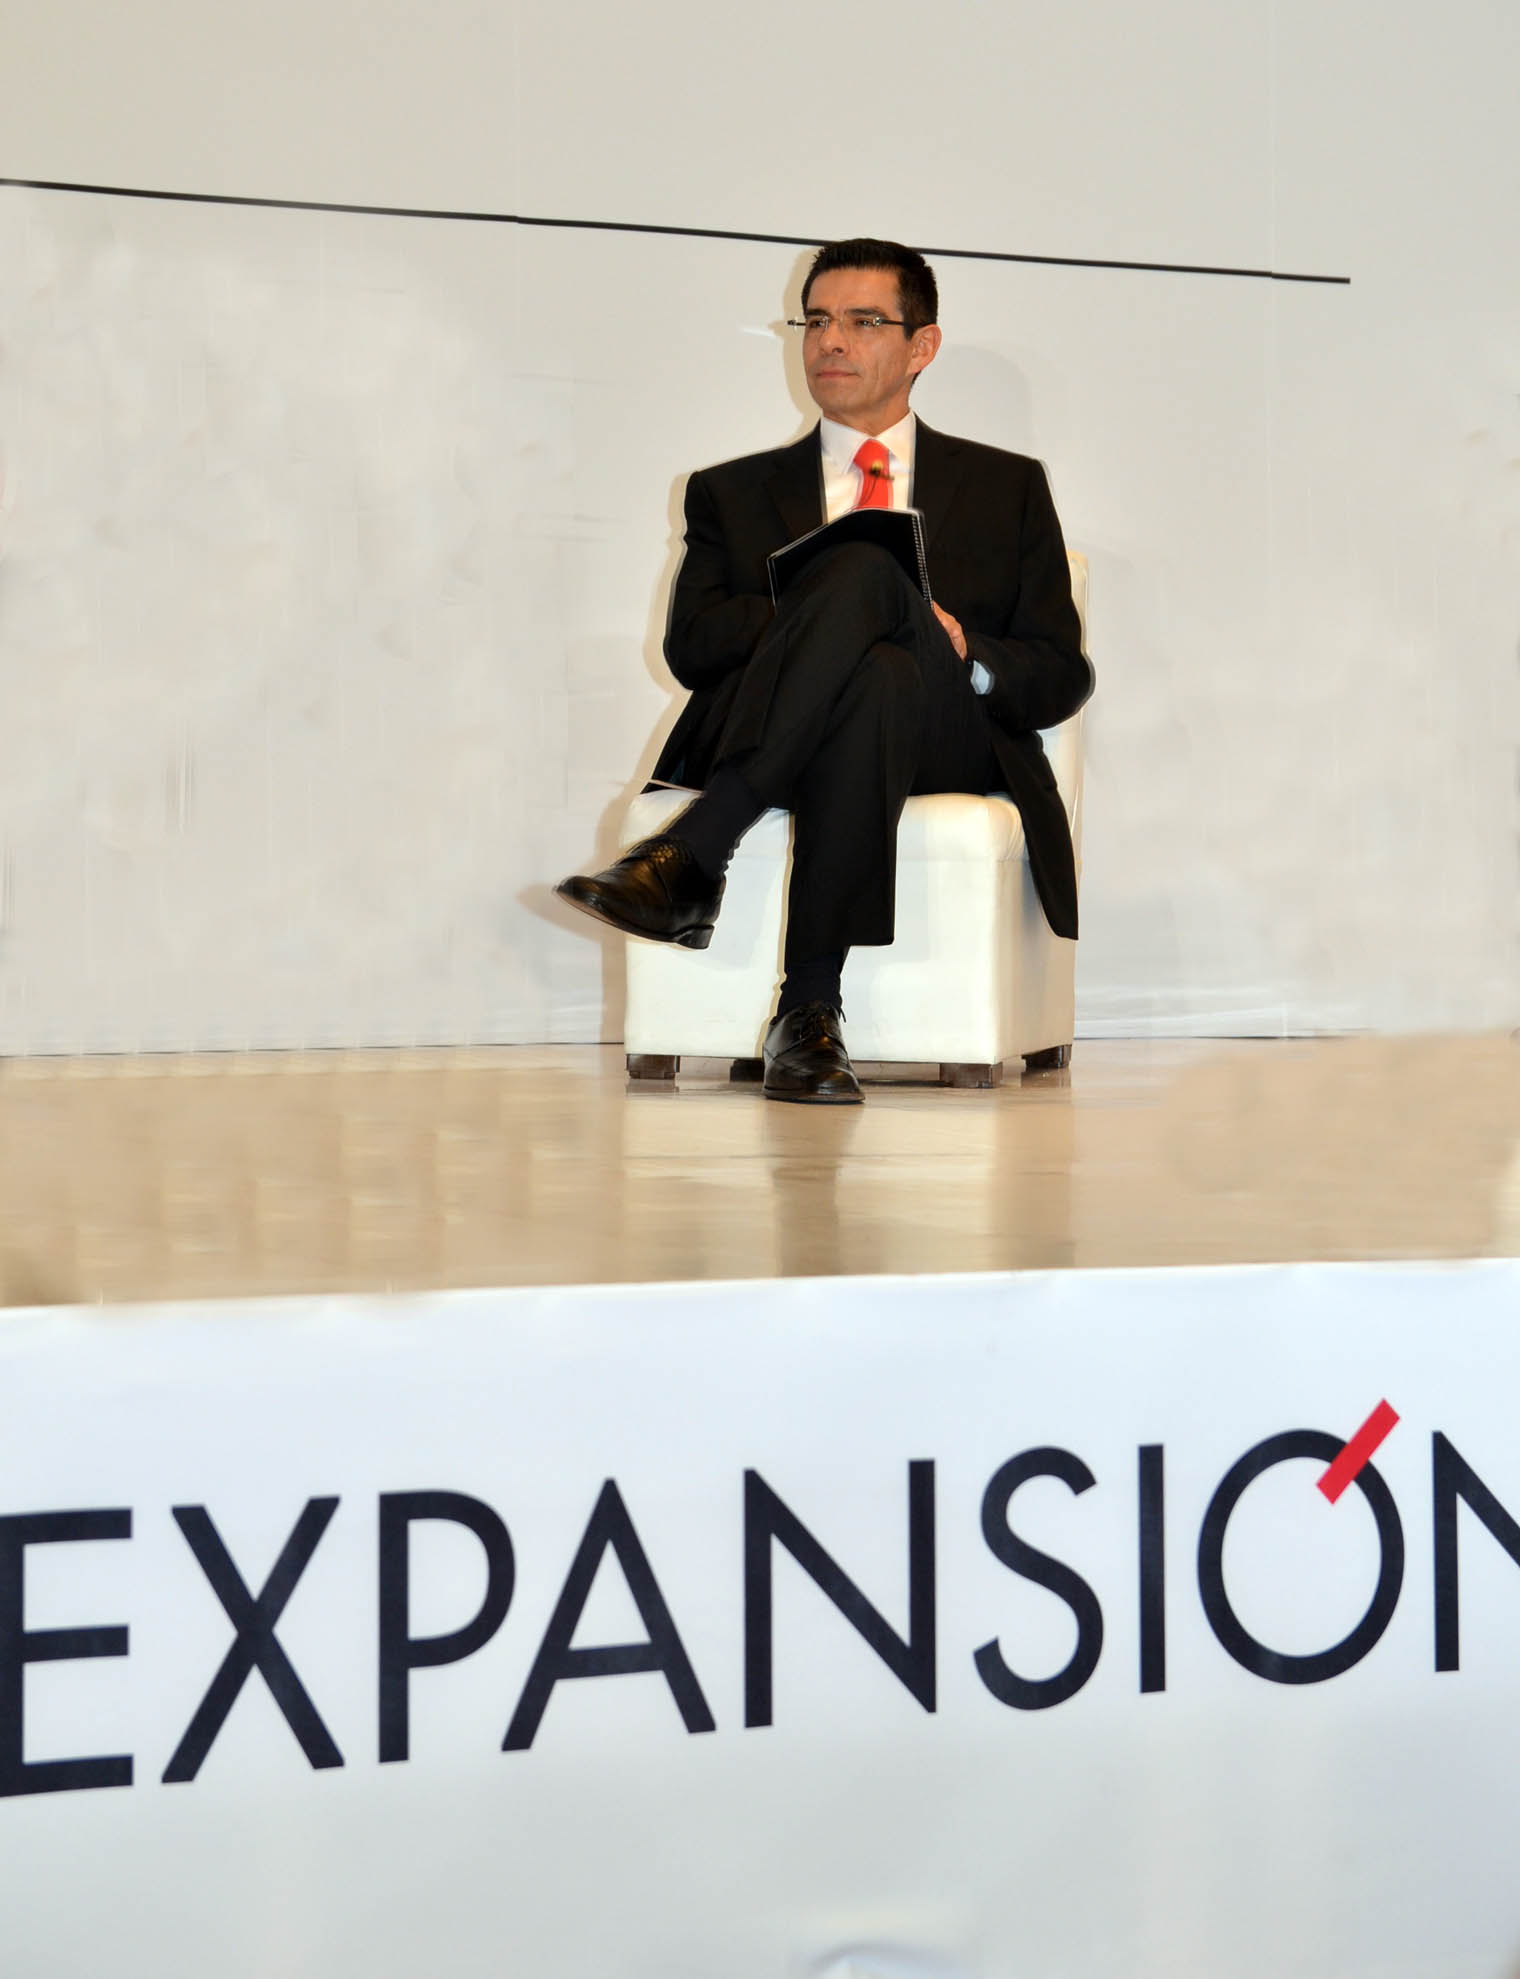 Foro emprendedores expansin 12